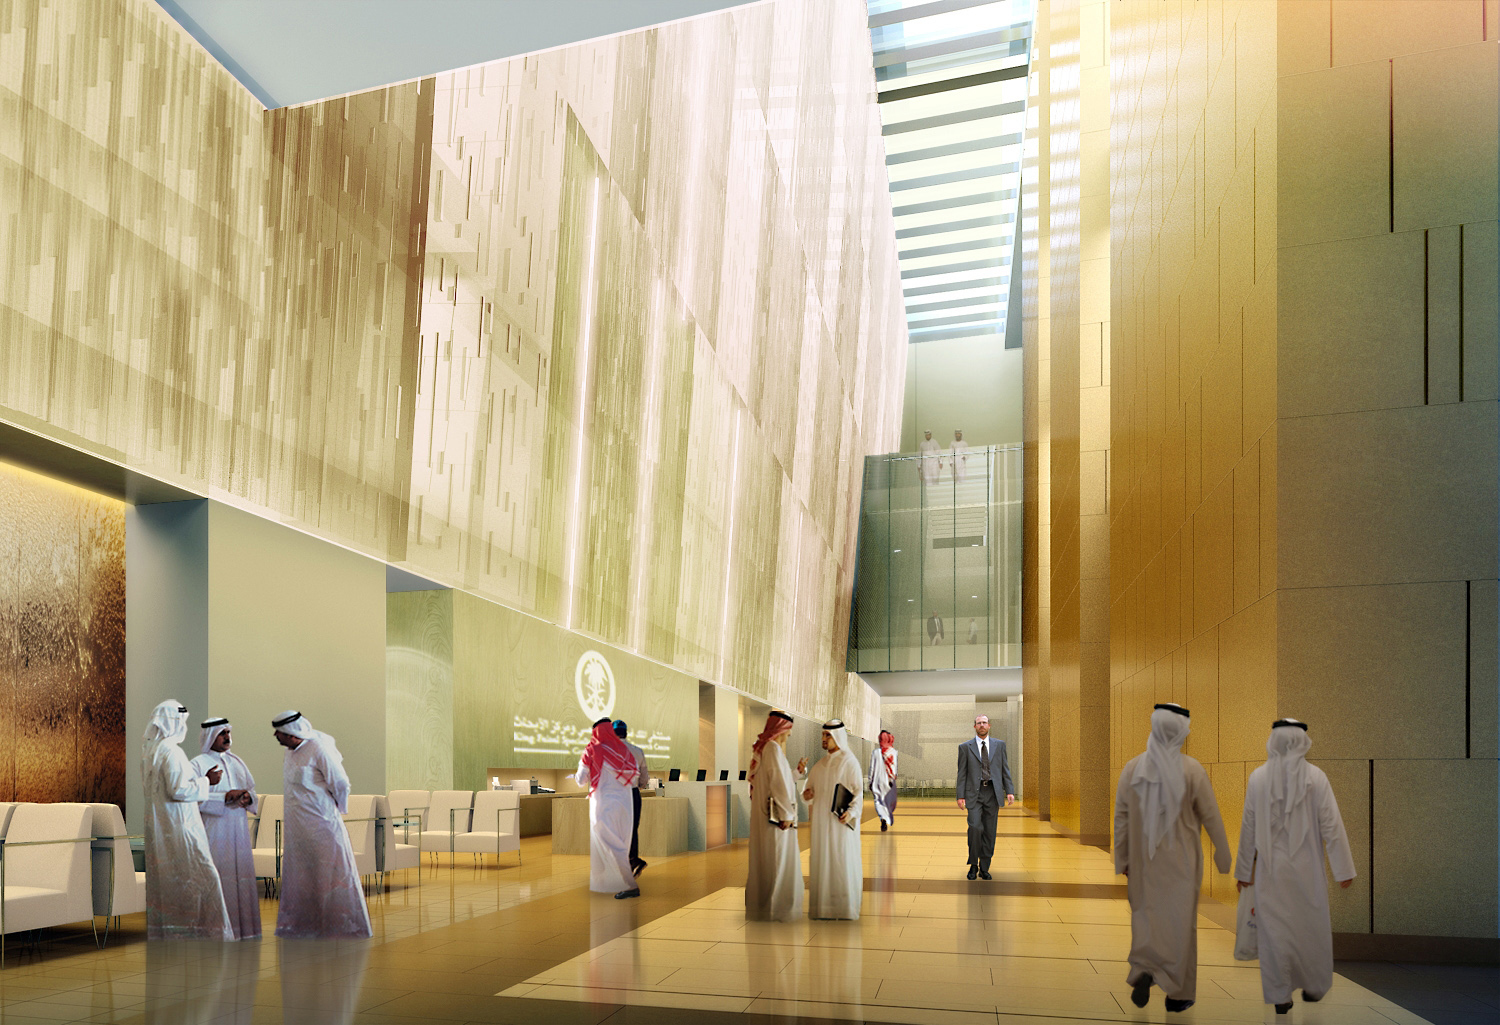 King Faisal Specialist Hospital & Research Center